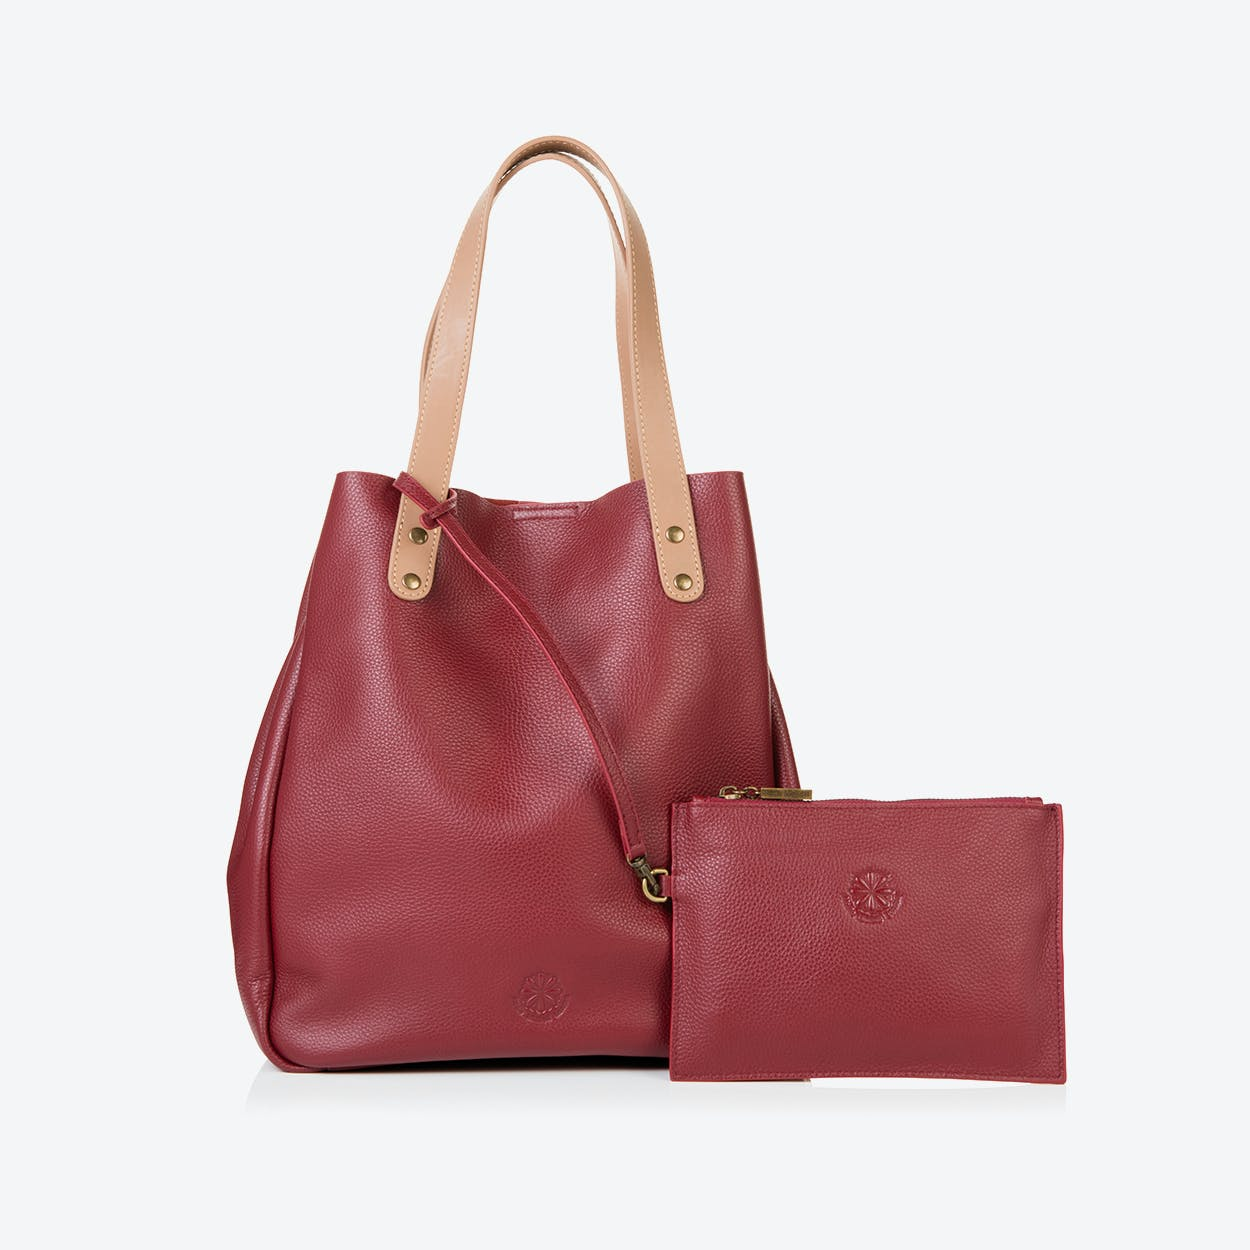 Camden Tote in Oxblood